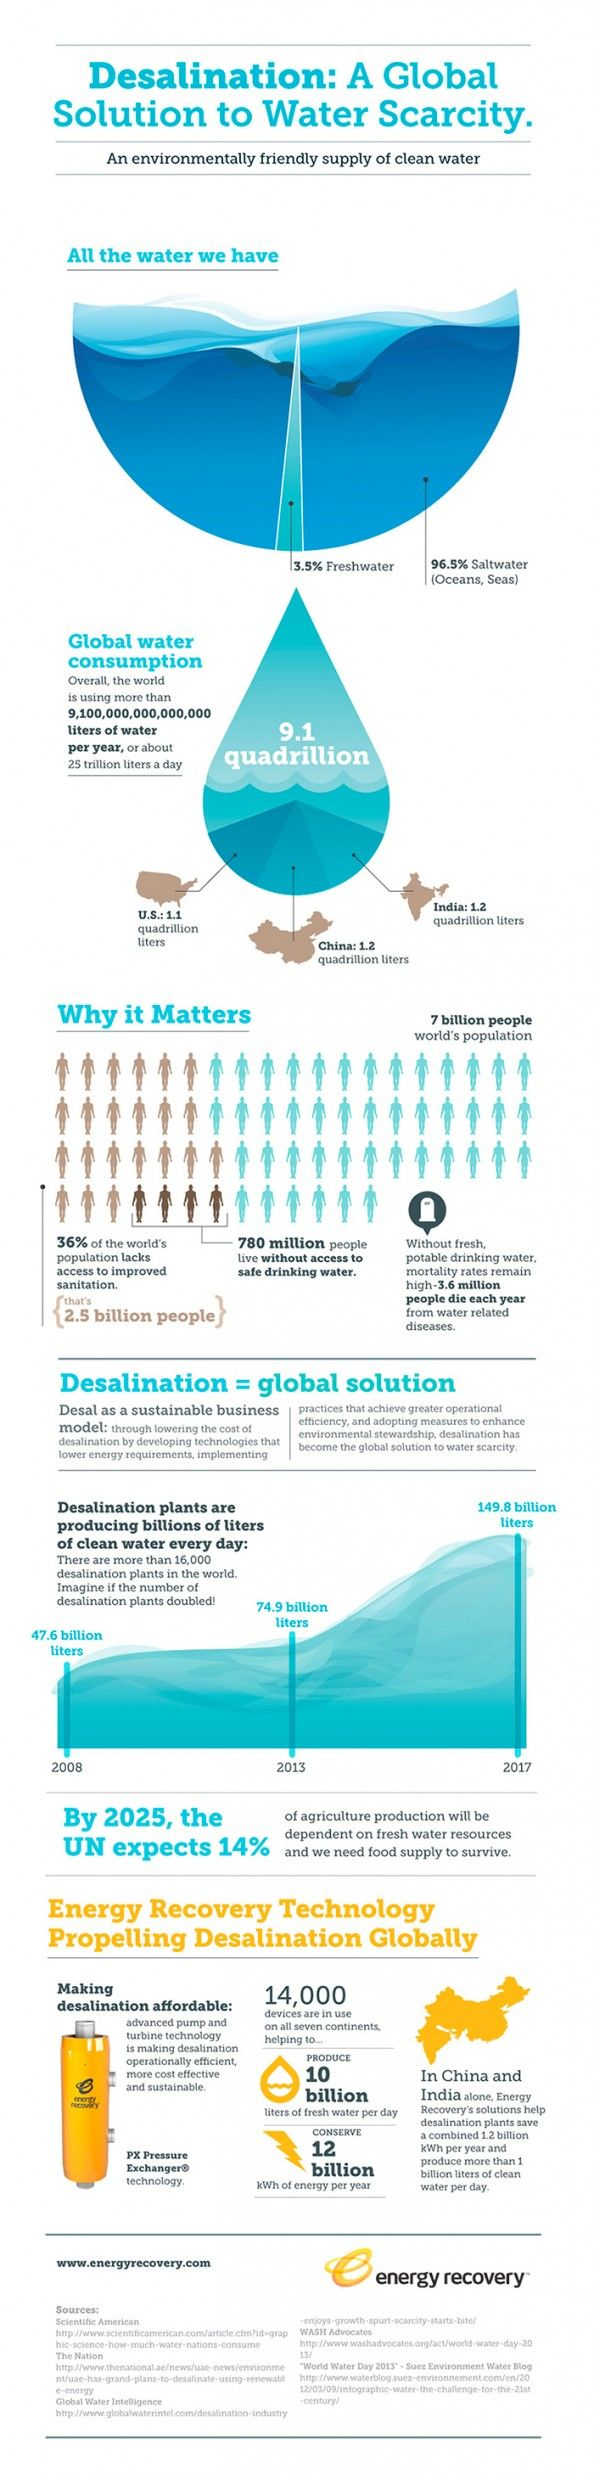 REPOST Desalination: A Global Solution to Water Scarcity Infographic. water crisis issue problem health environment sustainability help make a difference graphic facts